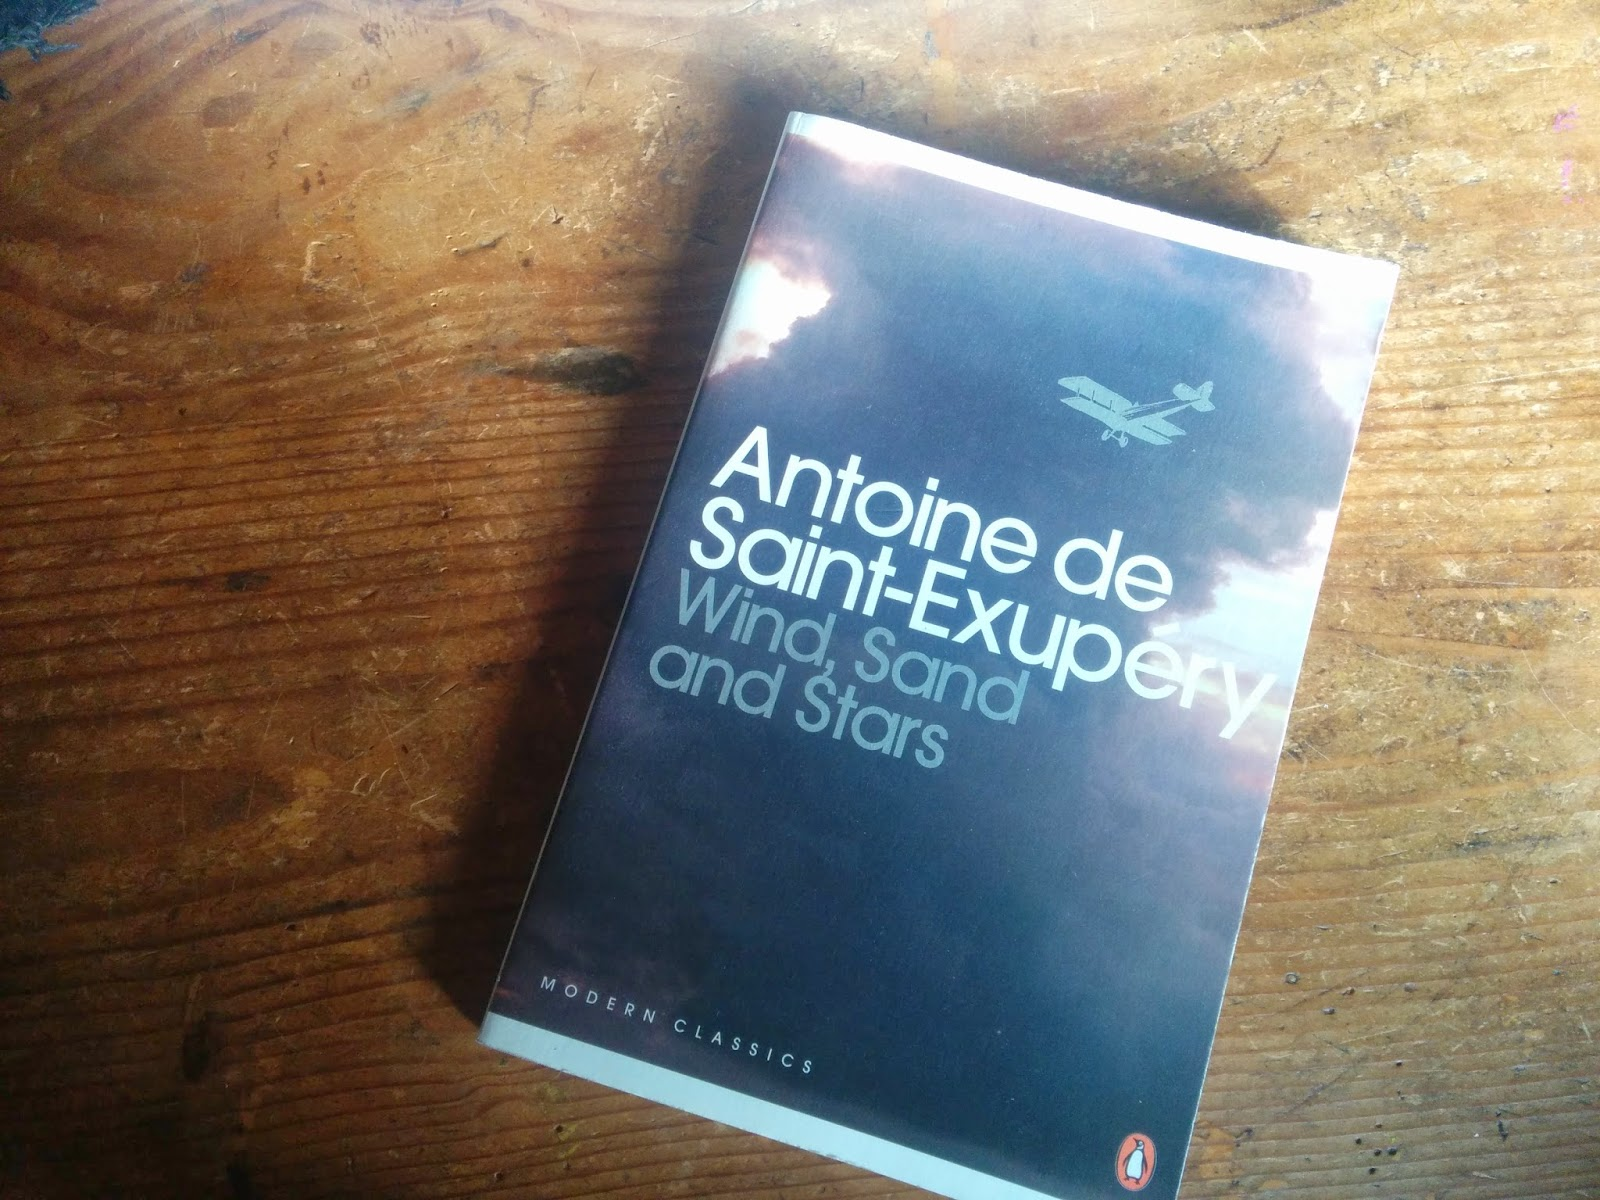 Penguin edition of Wind, Sand and Stars by Antoine de Saint-Exupéry